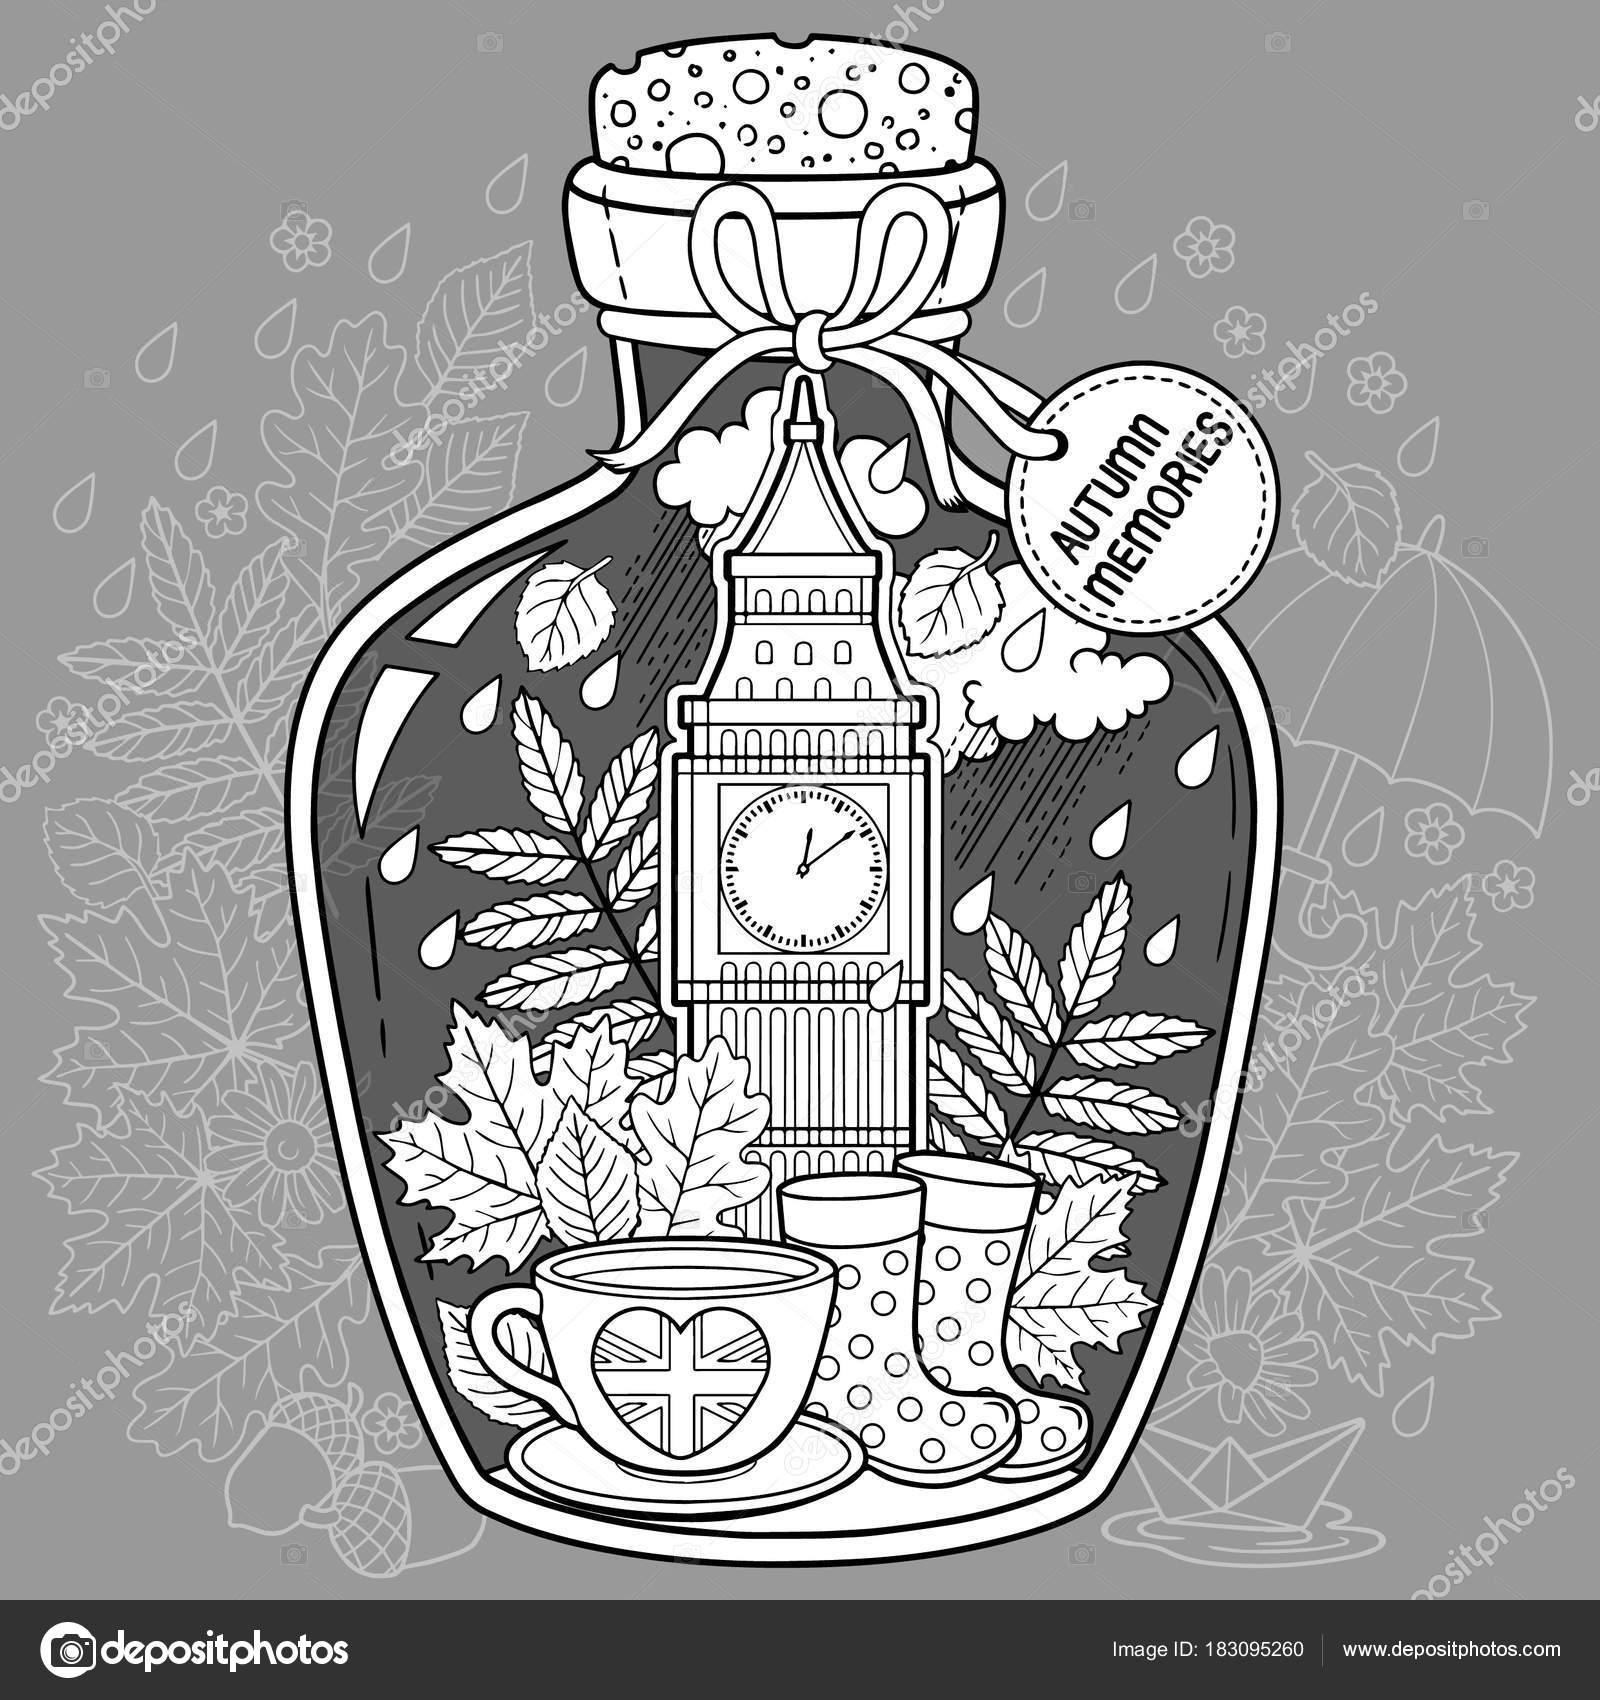 Coloring Book For Adults A Glass Vessel With Autumn Memories Of Dreams About Trip To London Bottle Rain Boots Leaves Cup Tea